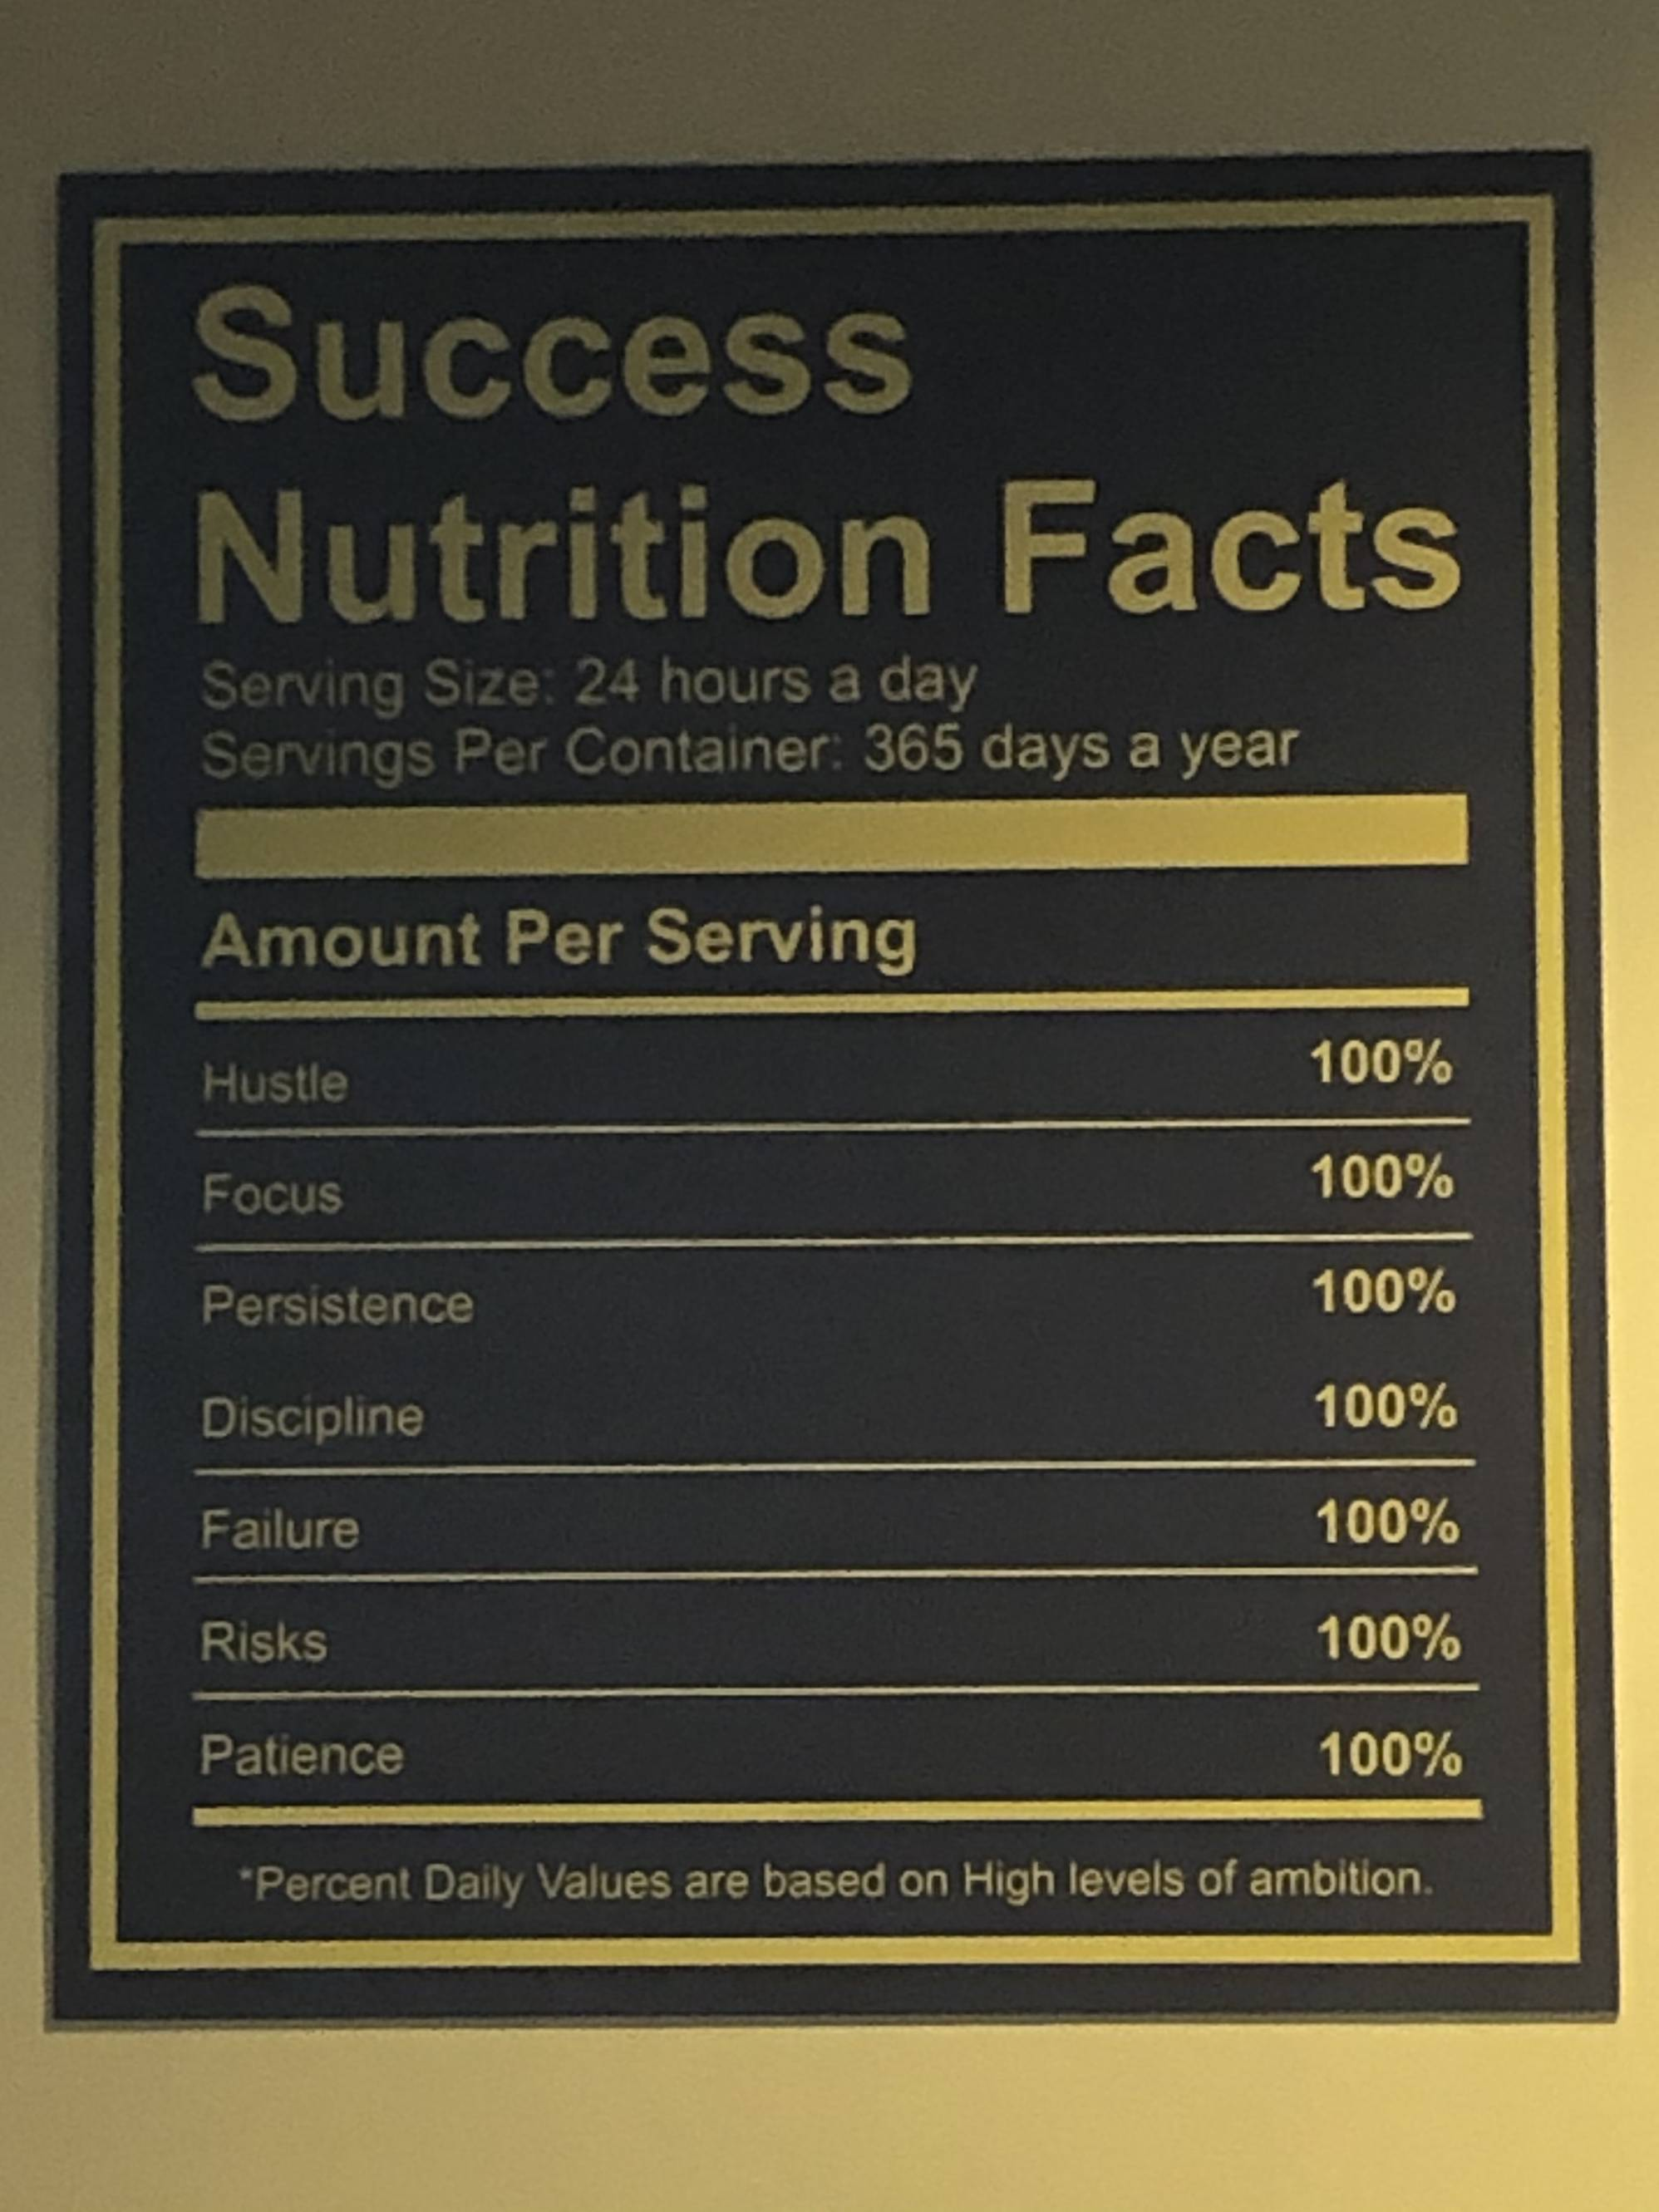 [Image] Success Nutrition facts